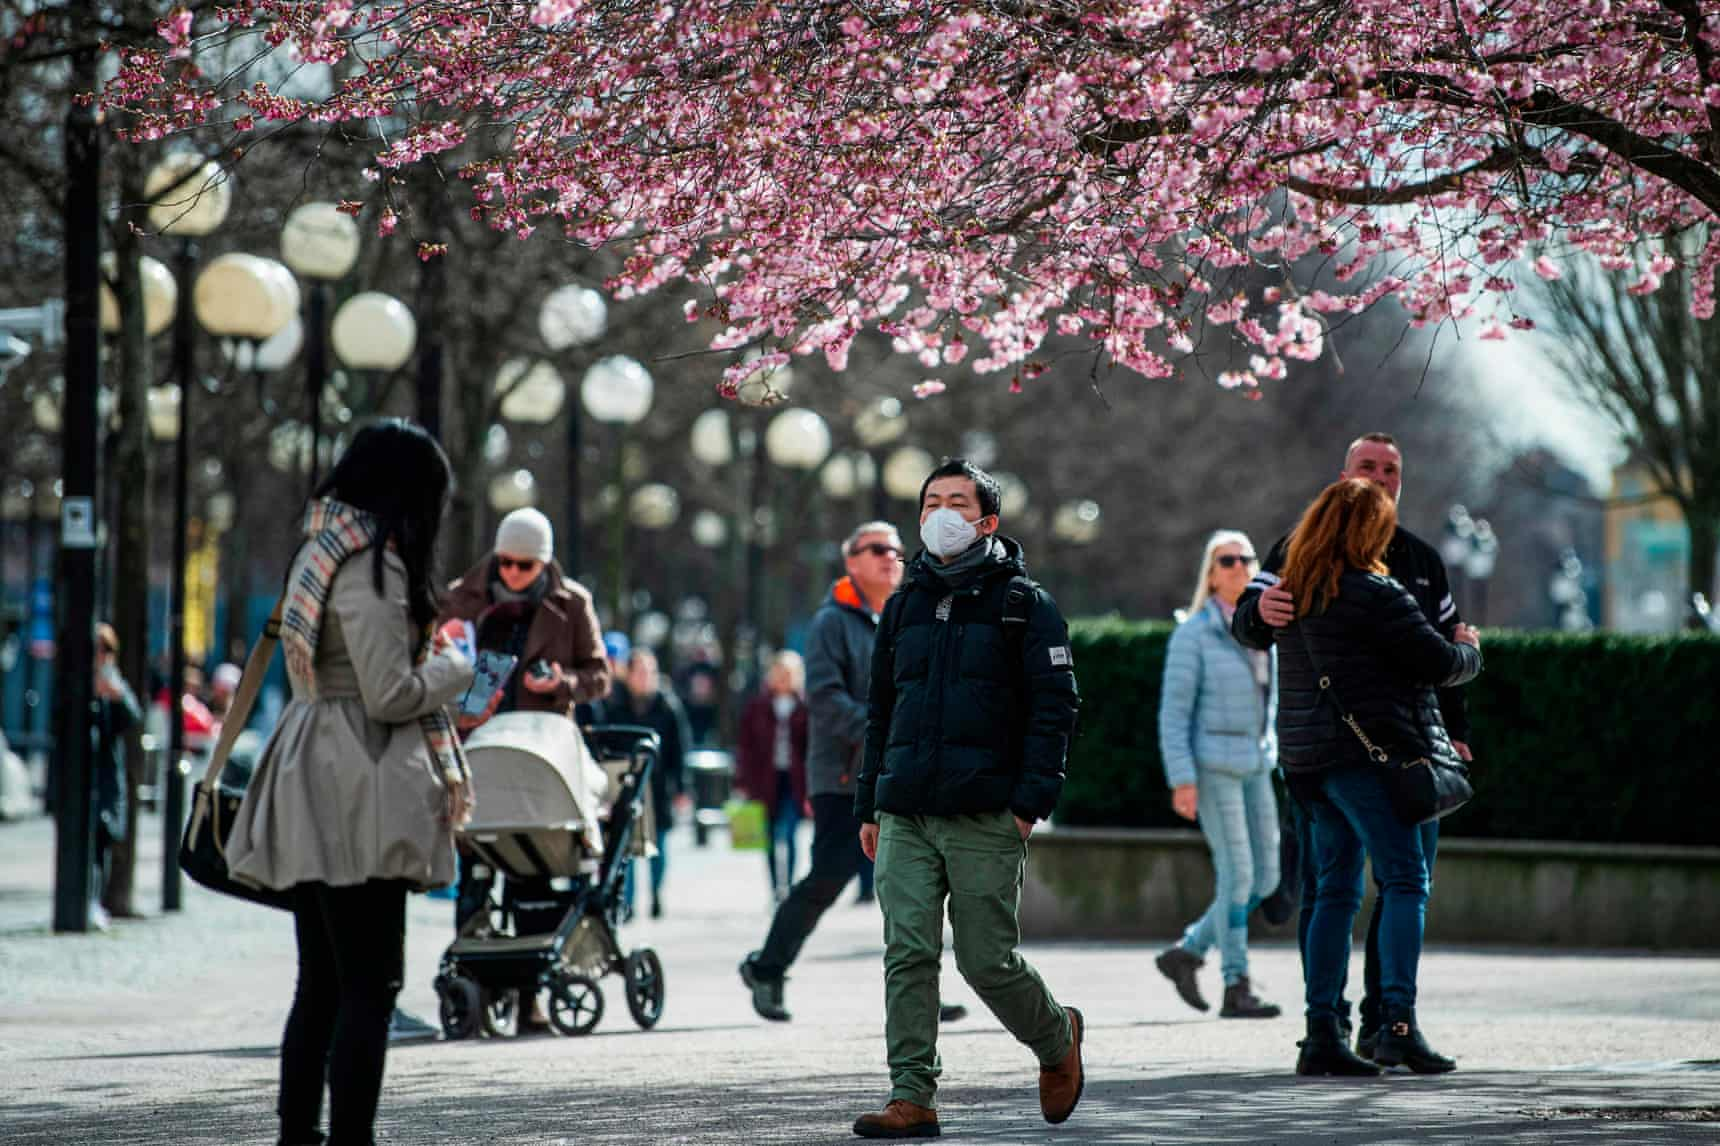 People walk among the cherry blossoms at Kungsträdgården in Stockholm. Sweden has stayed open for business, with a softer approach to curbing the spread of Covid-19 than most of Europe. Photograph: Jonathan Nackstrand/AFP via Getty Images